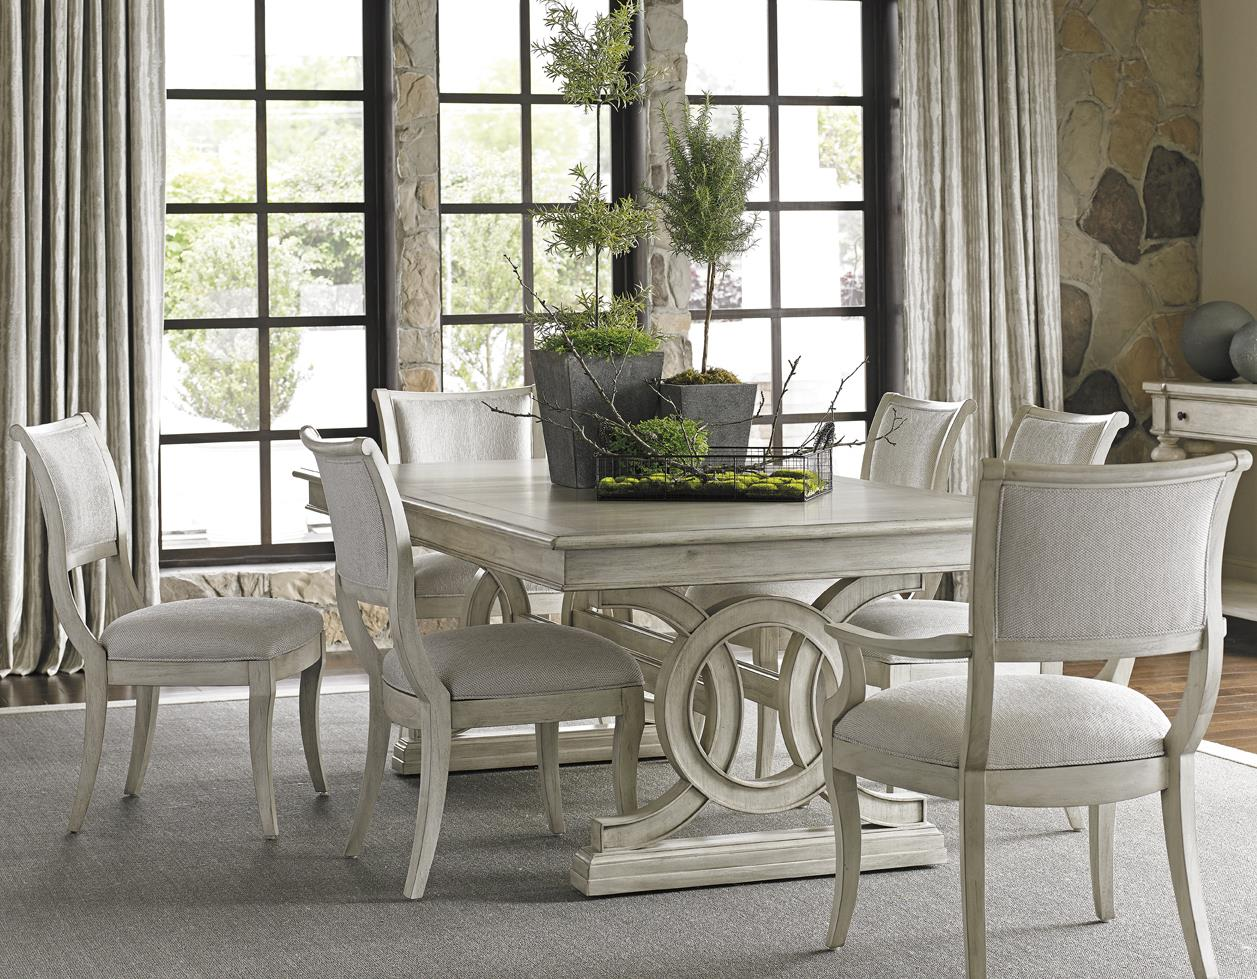 Oyster Bay 7 Pc Dining Set by Lexington at Baer's Furniture